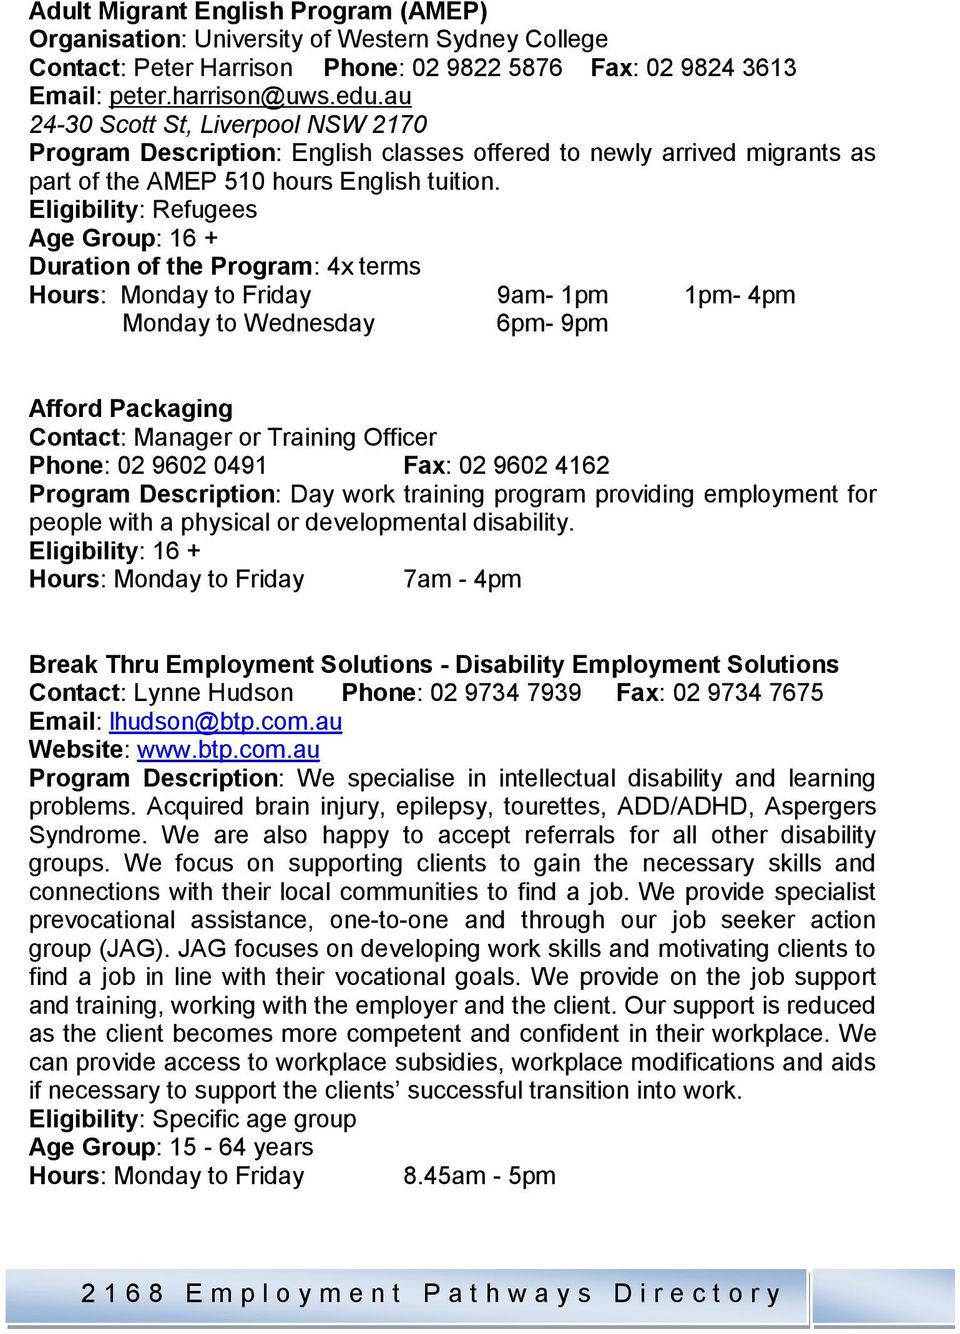 Eligibility: Refugees Age Group: 16 + Duration of the Program: 4x terms Hours: Monday to Friday 9am- 1pm 1pm- 4pm Monday to Wednesday 6pm- 9pm Afford Packaging Contact: Manager or Training Officer